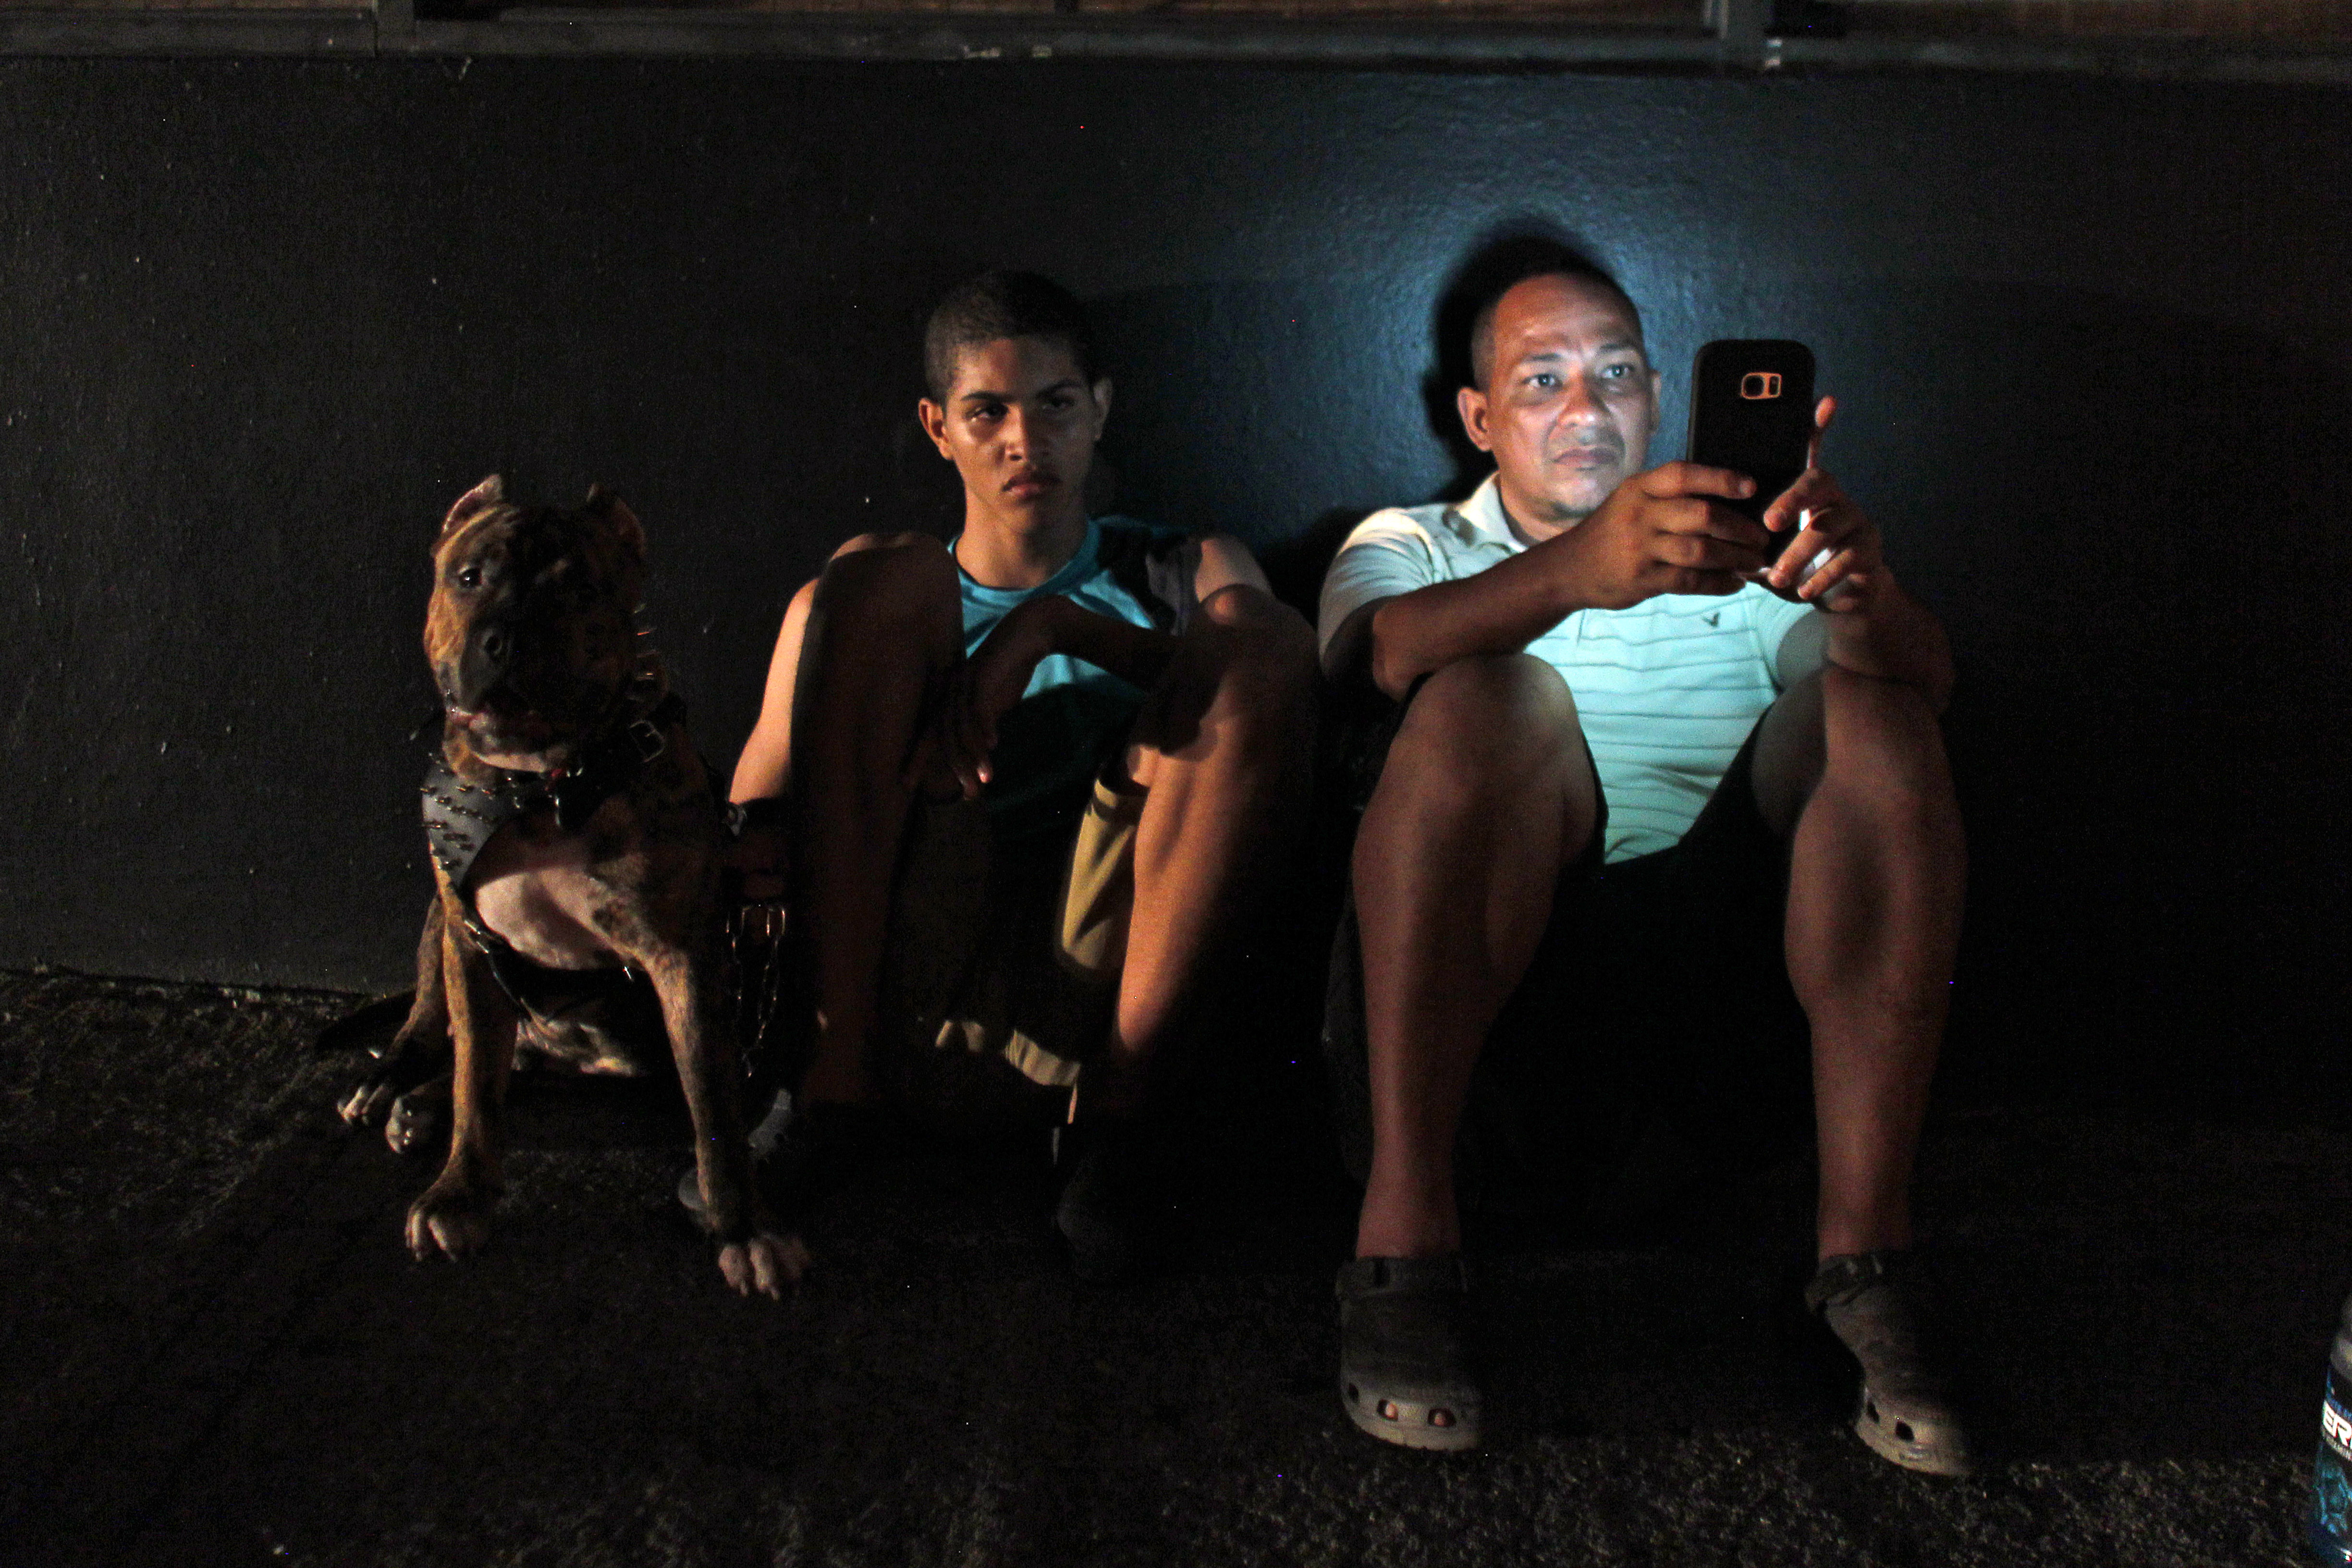 A man checks his cell phone next to a road at night in one of a few places with cell signal in San Juan, Puerto Rico, on September 25, 2017, where a 7pm-6am curfew has been imposed following impact of Hurricane Maria on the island. / AFP PHOTO / Ricardo ARDUENGO (Photo credit should read RICARDO ARDUENGO/AFP/Getty Images)